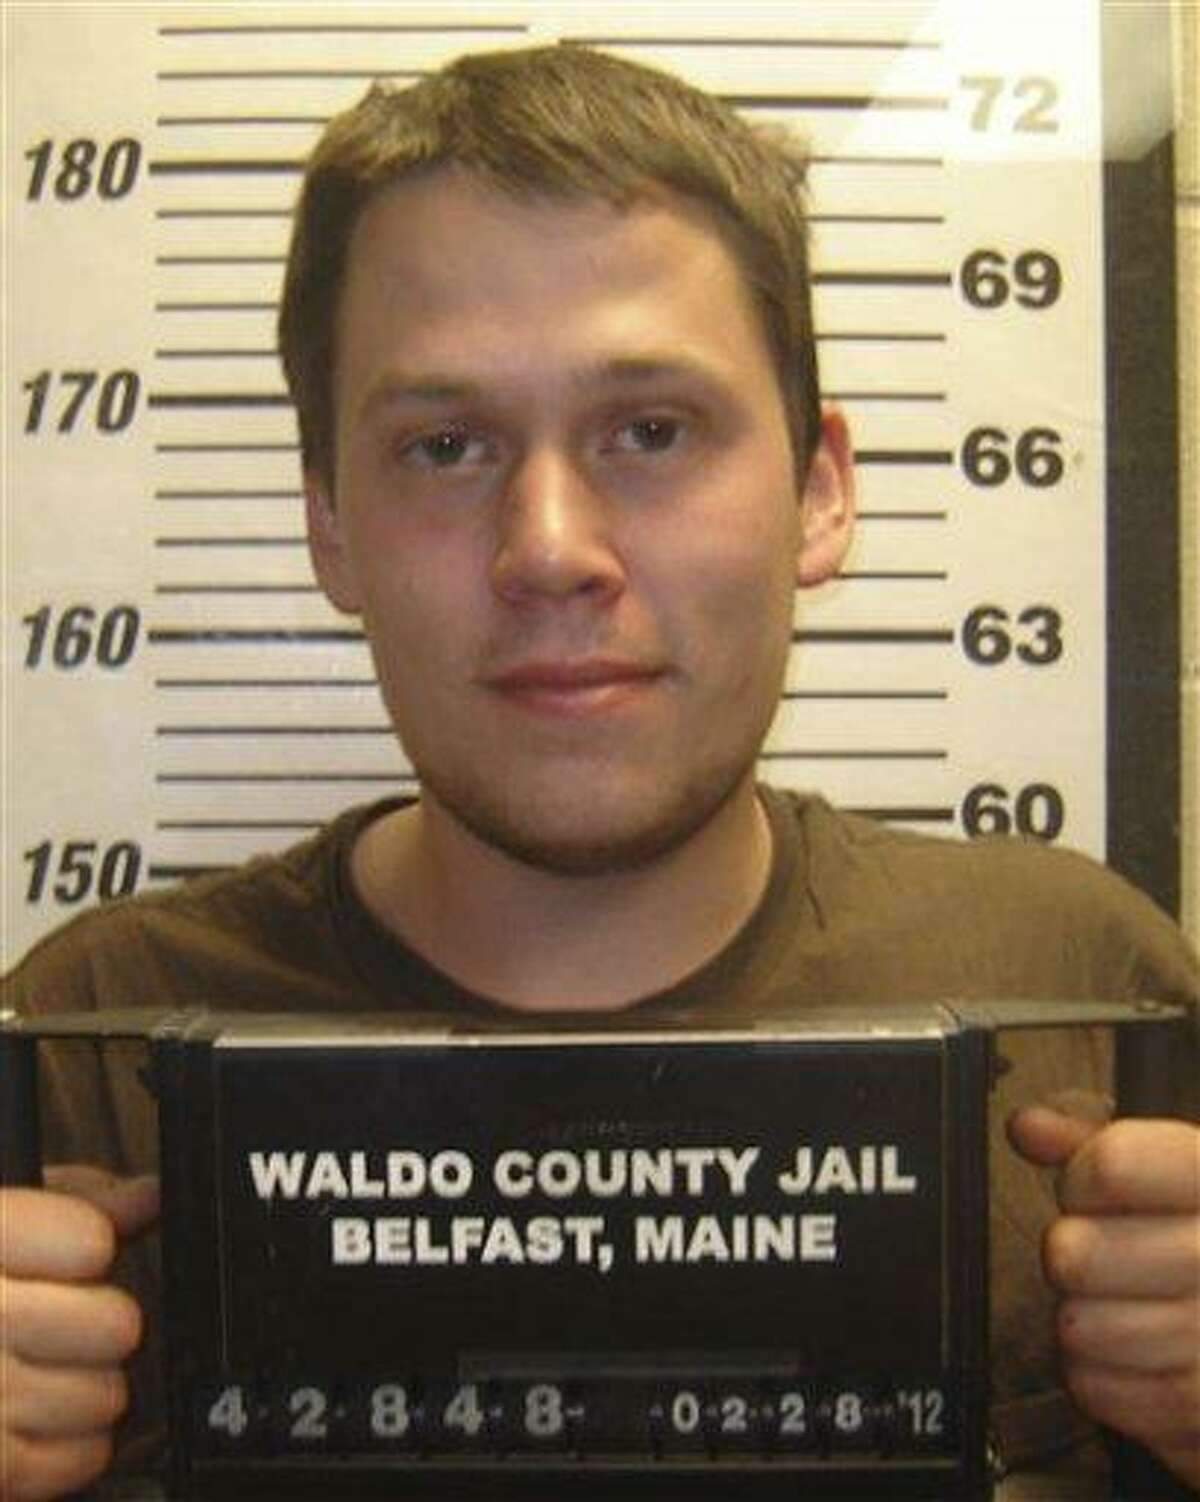 Maine police say they charged 24-year-old Daniel Porter, pictured here at the Waldo County Jail, in the death of Jerry Perdomo of Seminole County, Florida, who had been missing since Feb. 16. Associated Press